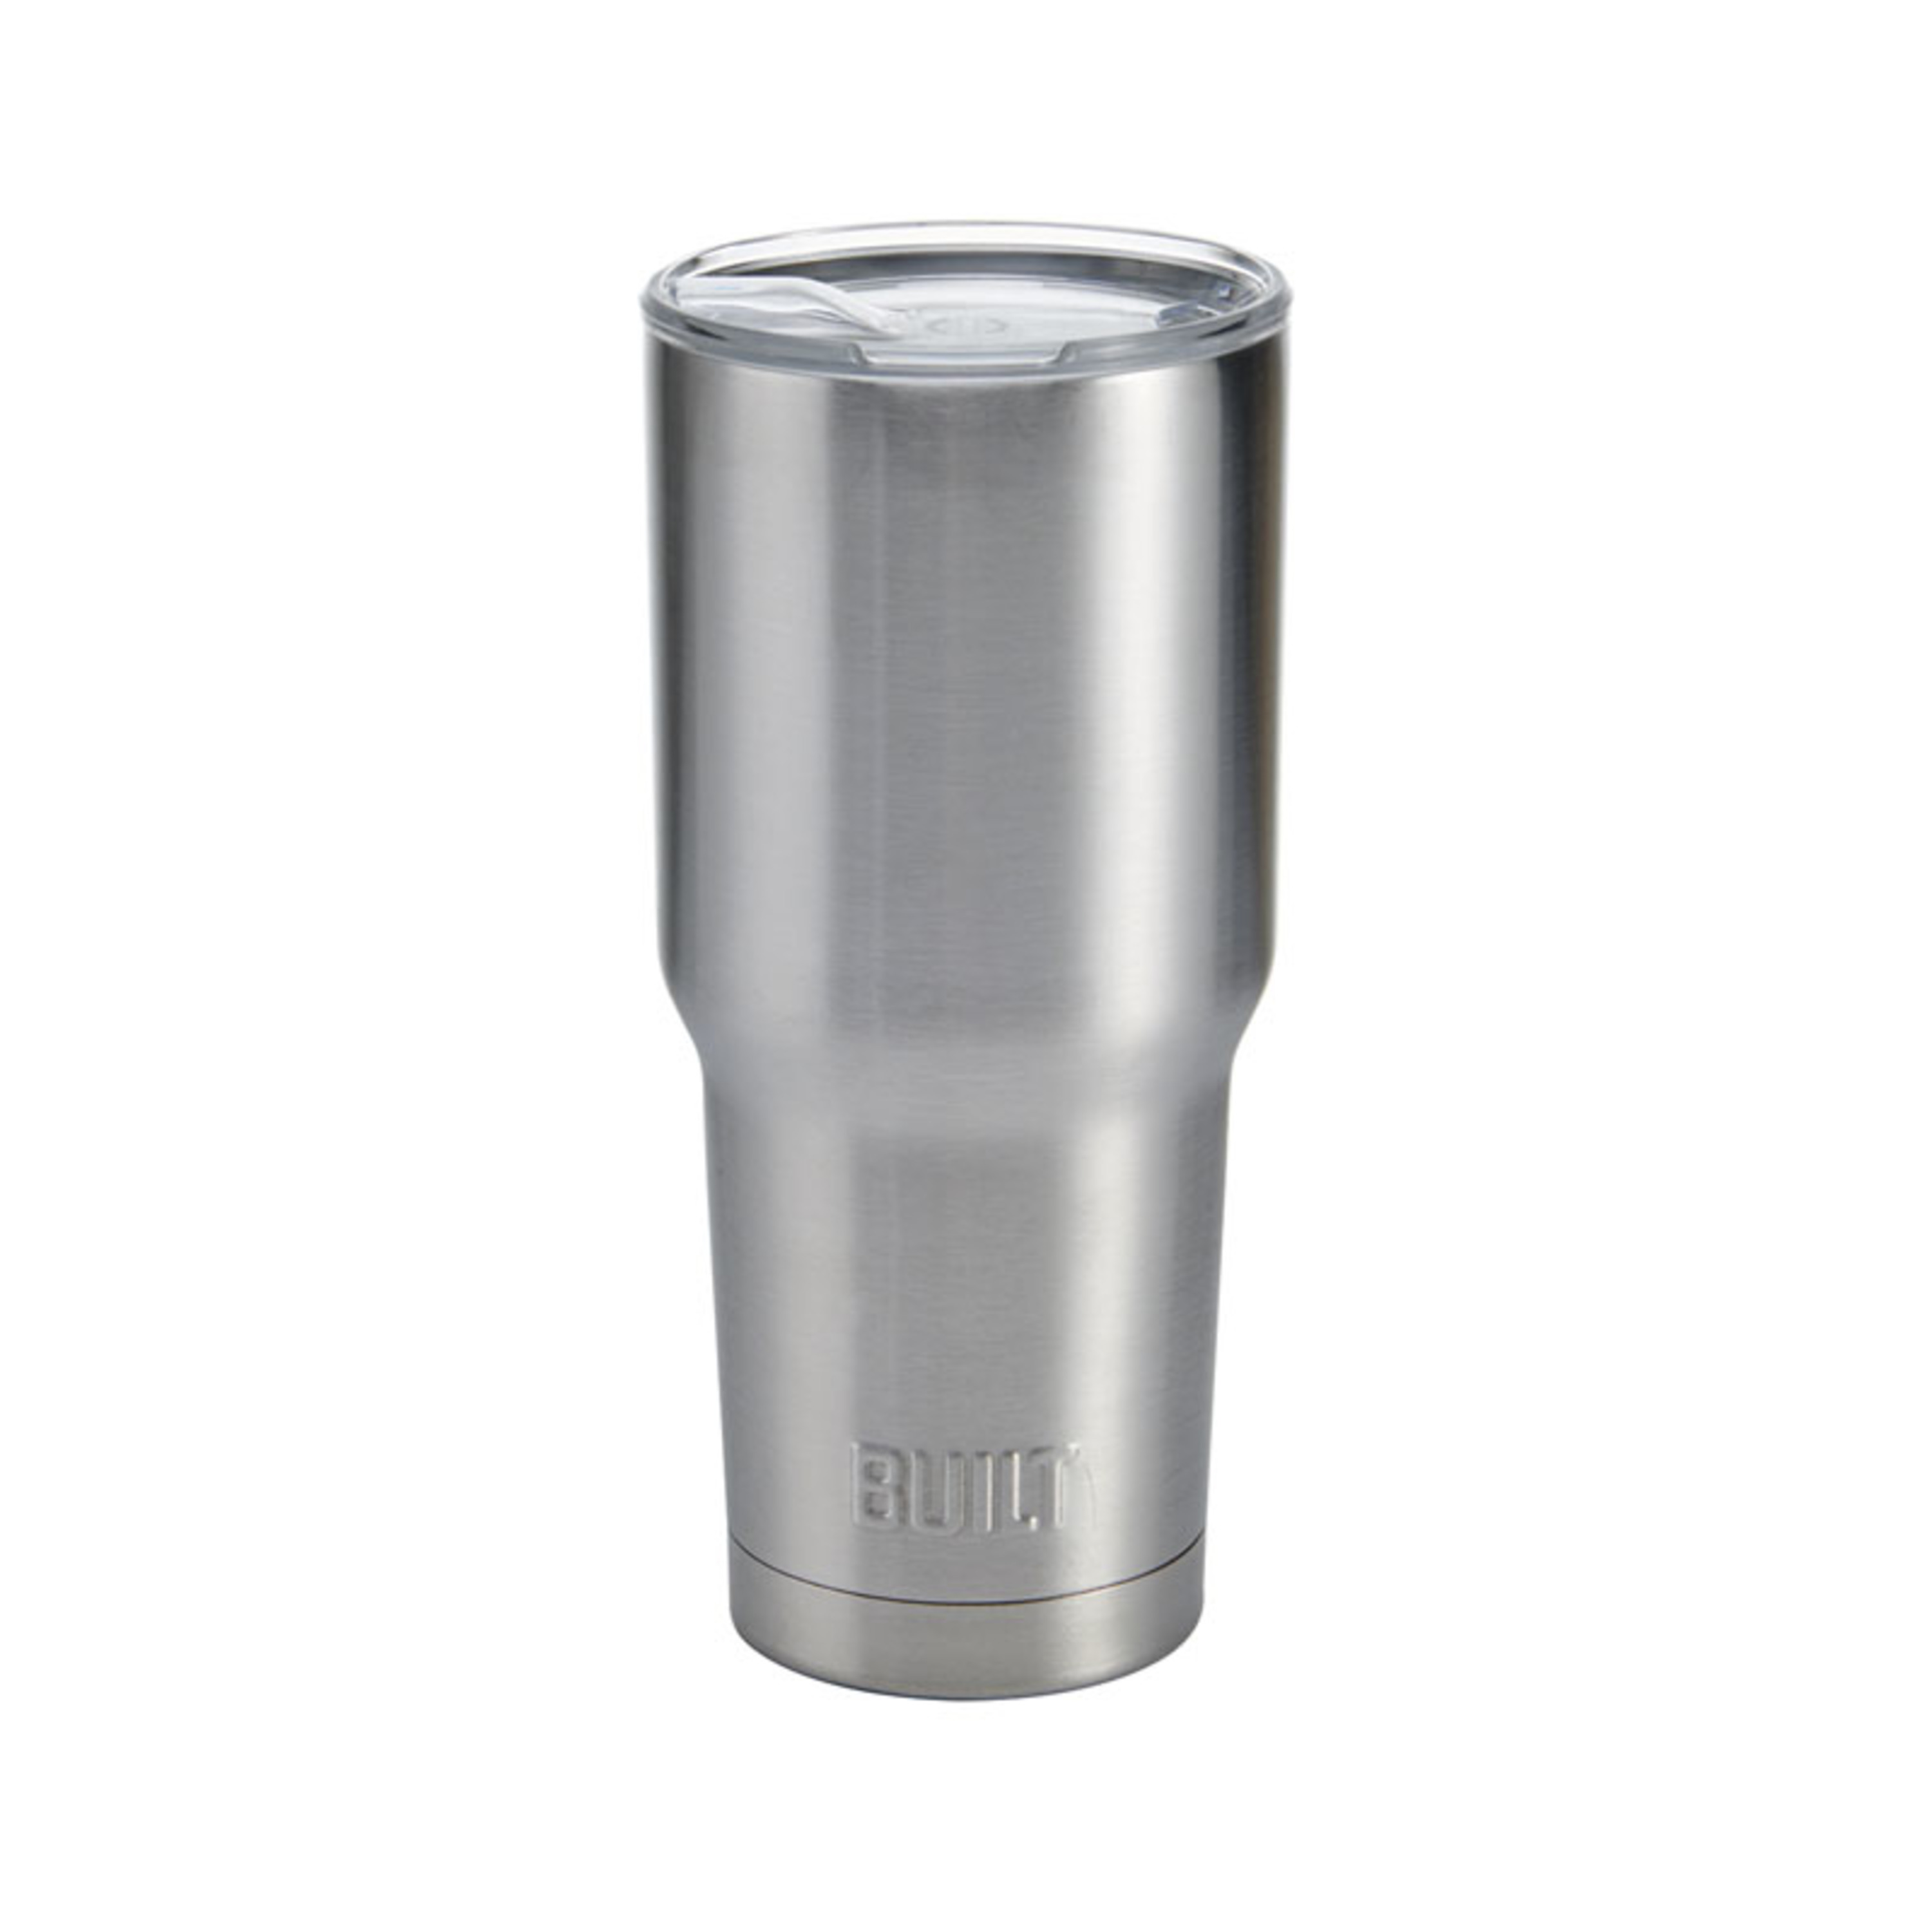 Built 30- ounce Double Wall Stainless Steel Tumbler, Stainless Steel